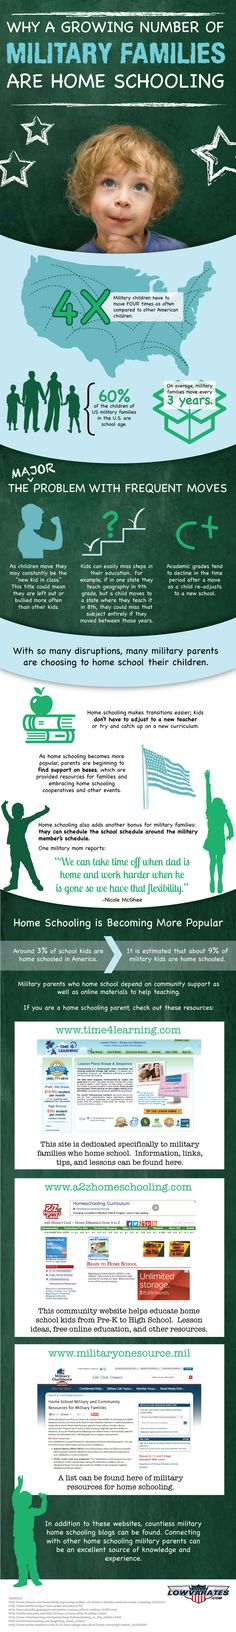 Why a Growing Number of Military Families are Home Schooling by Low VA Rates